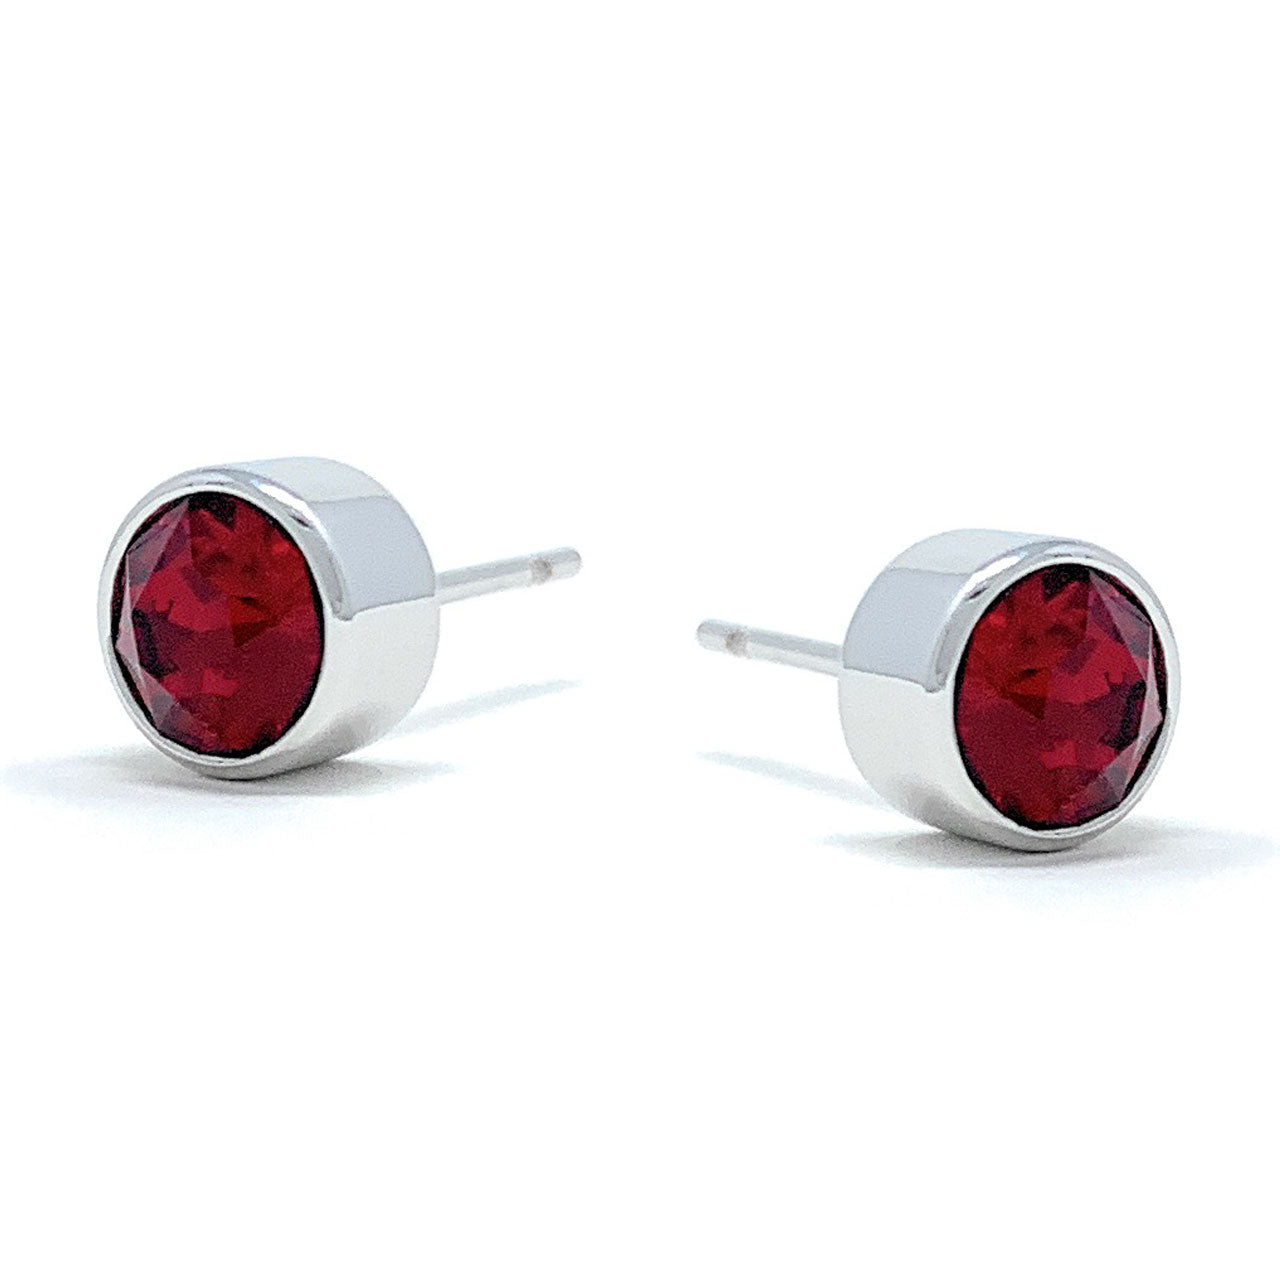 Harley Small Stud Earrings with Red Siam Round Crystals from Swarovski Silver Toned Rhodium Plated - Ed Heart